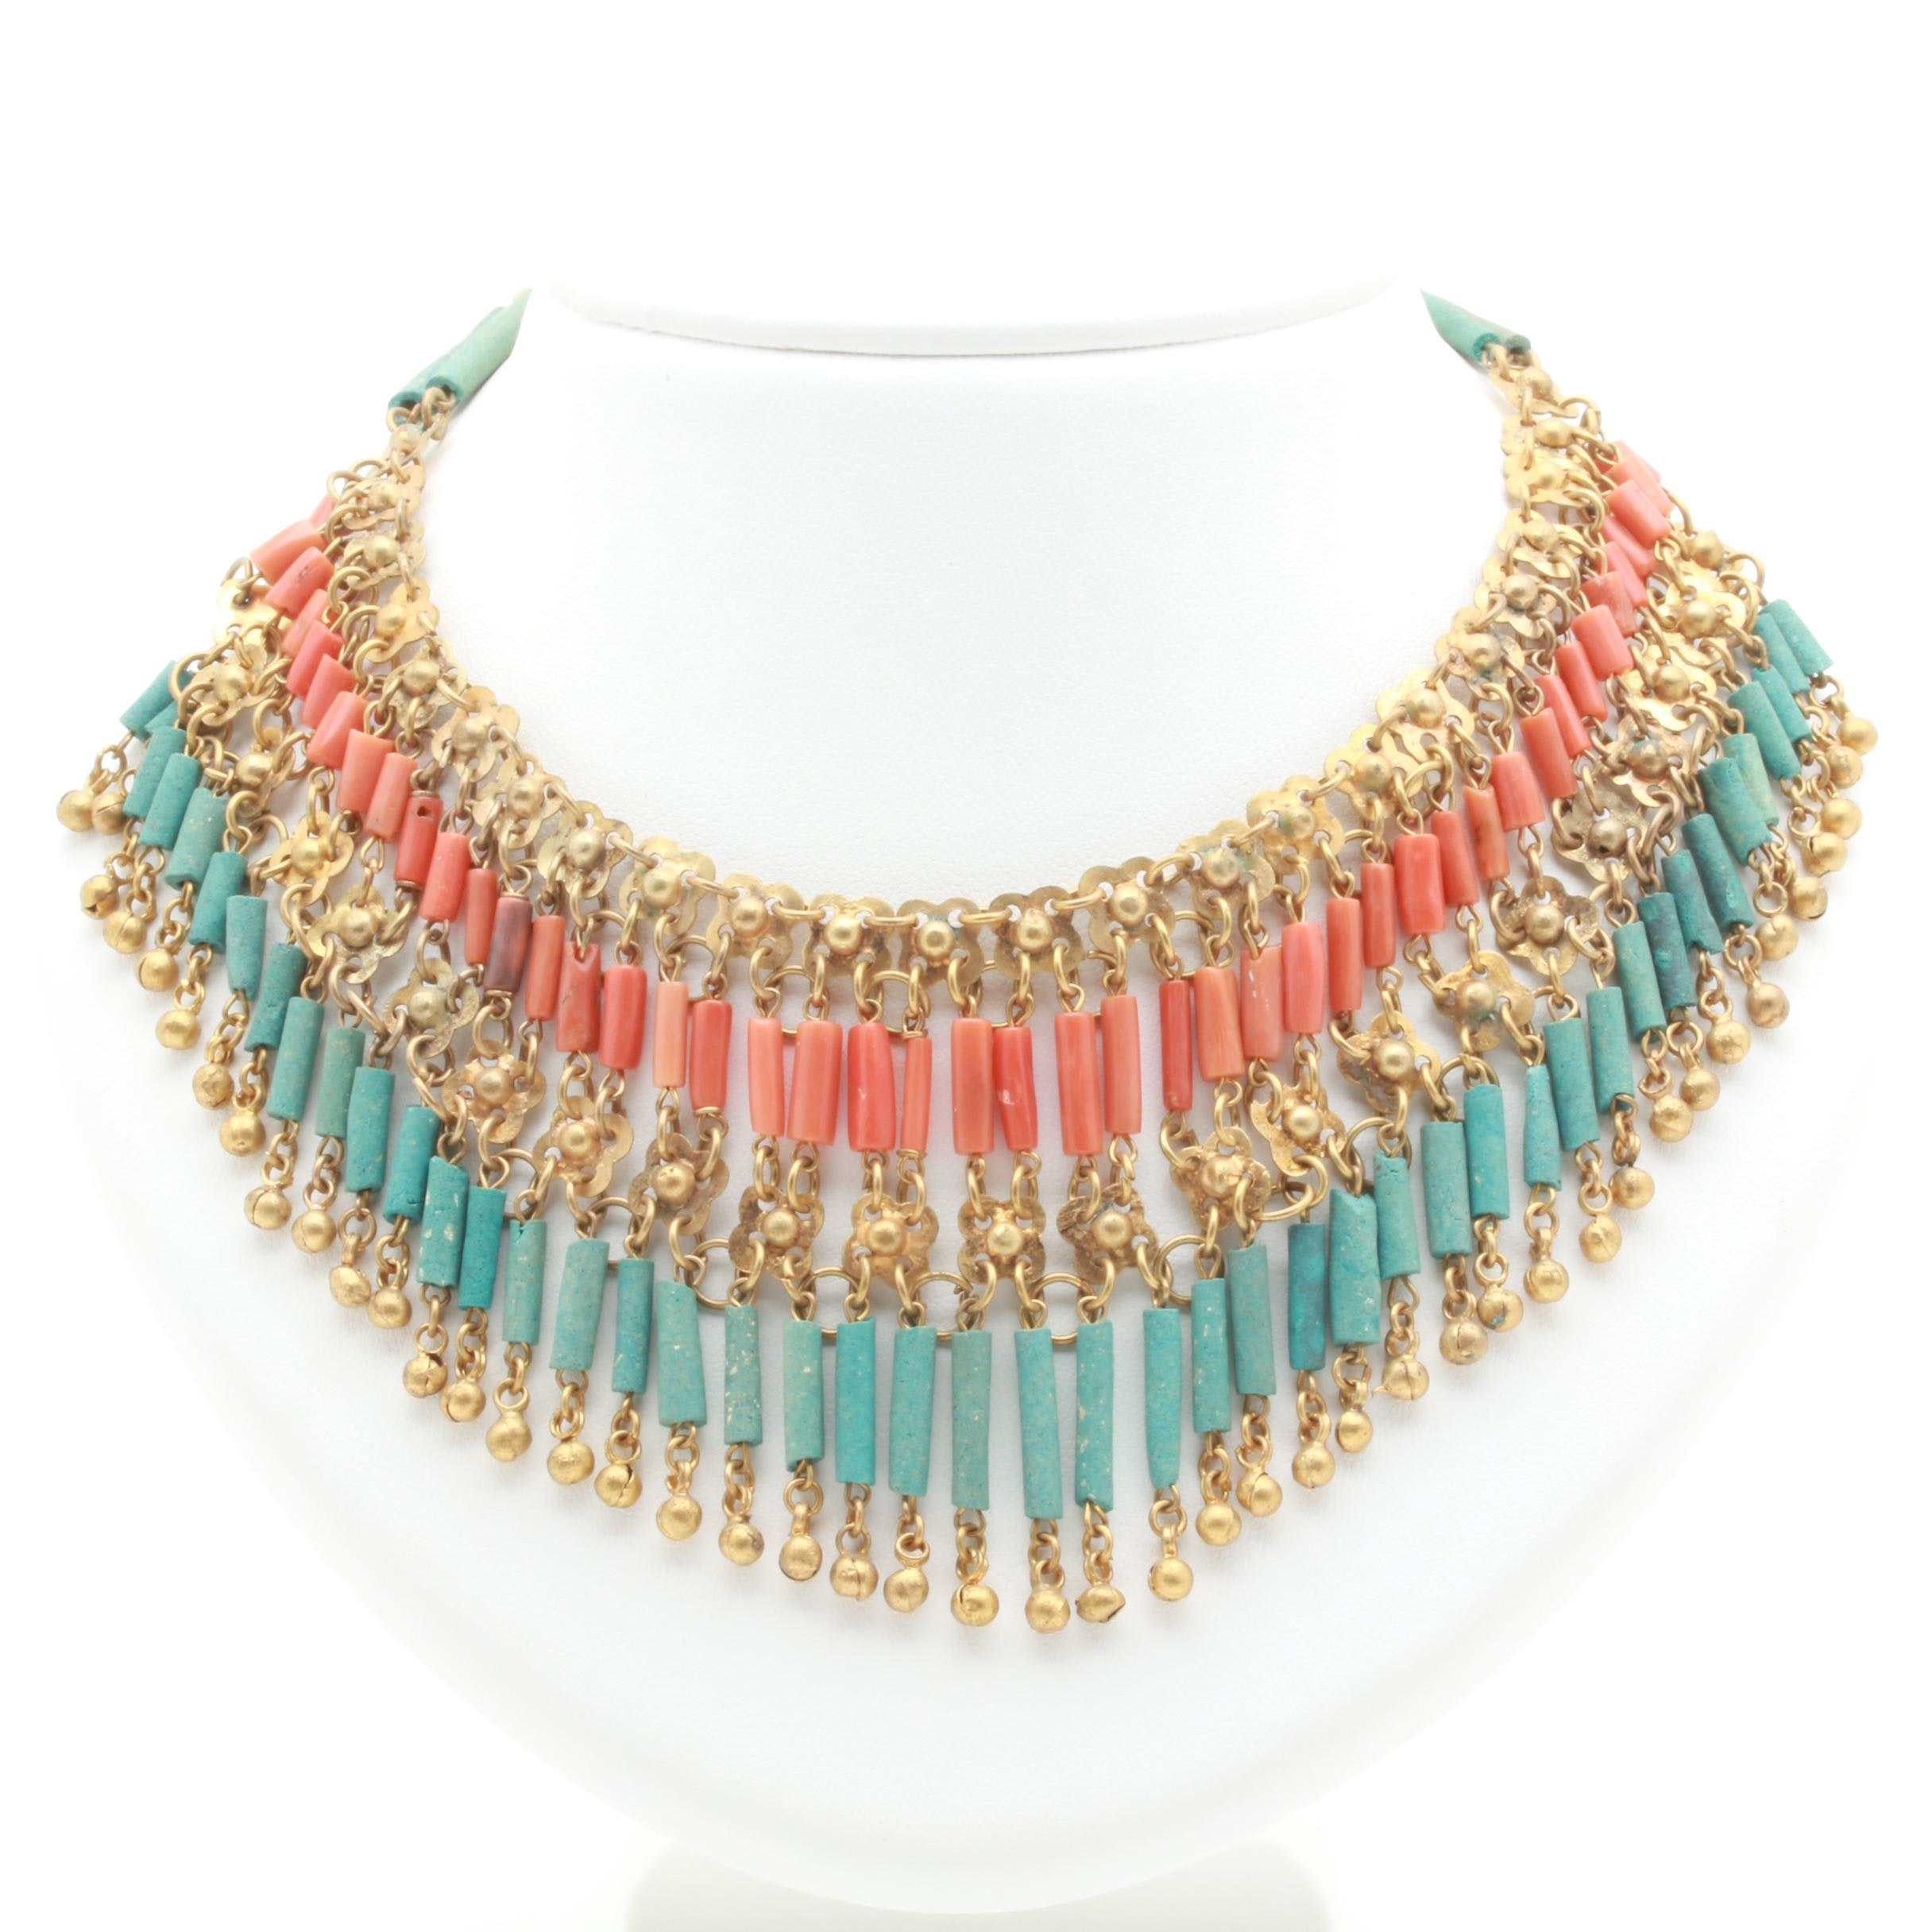 Cica 1920s-1930s Egyptian Revival Coral and Faience Necklace